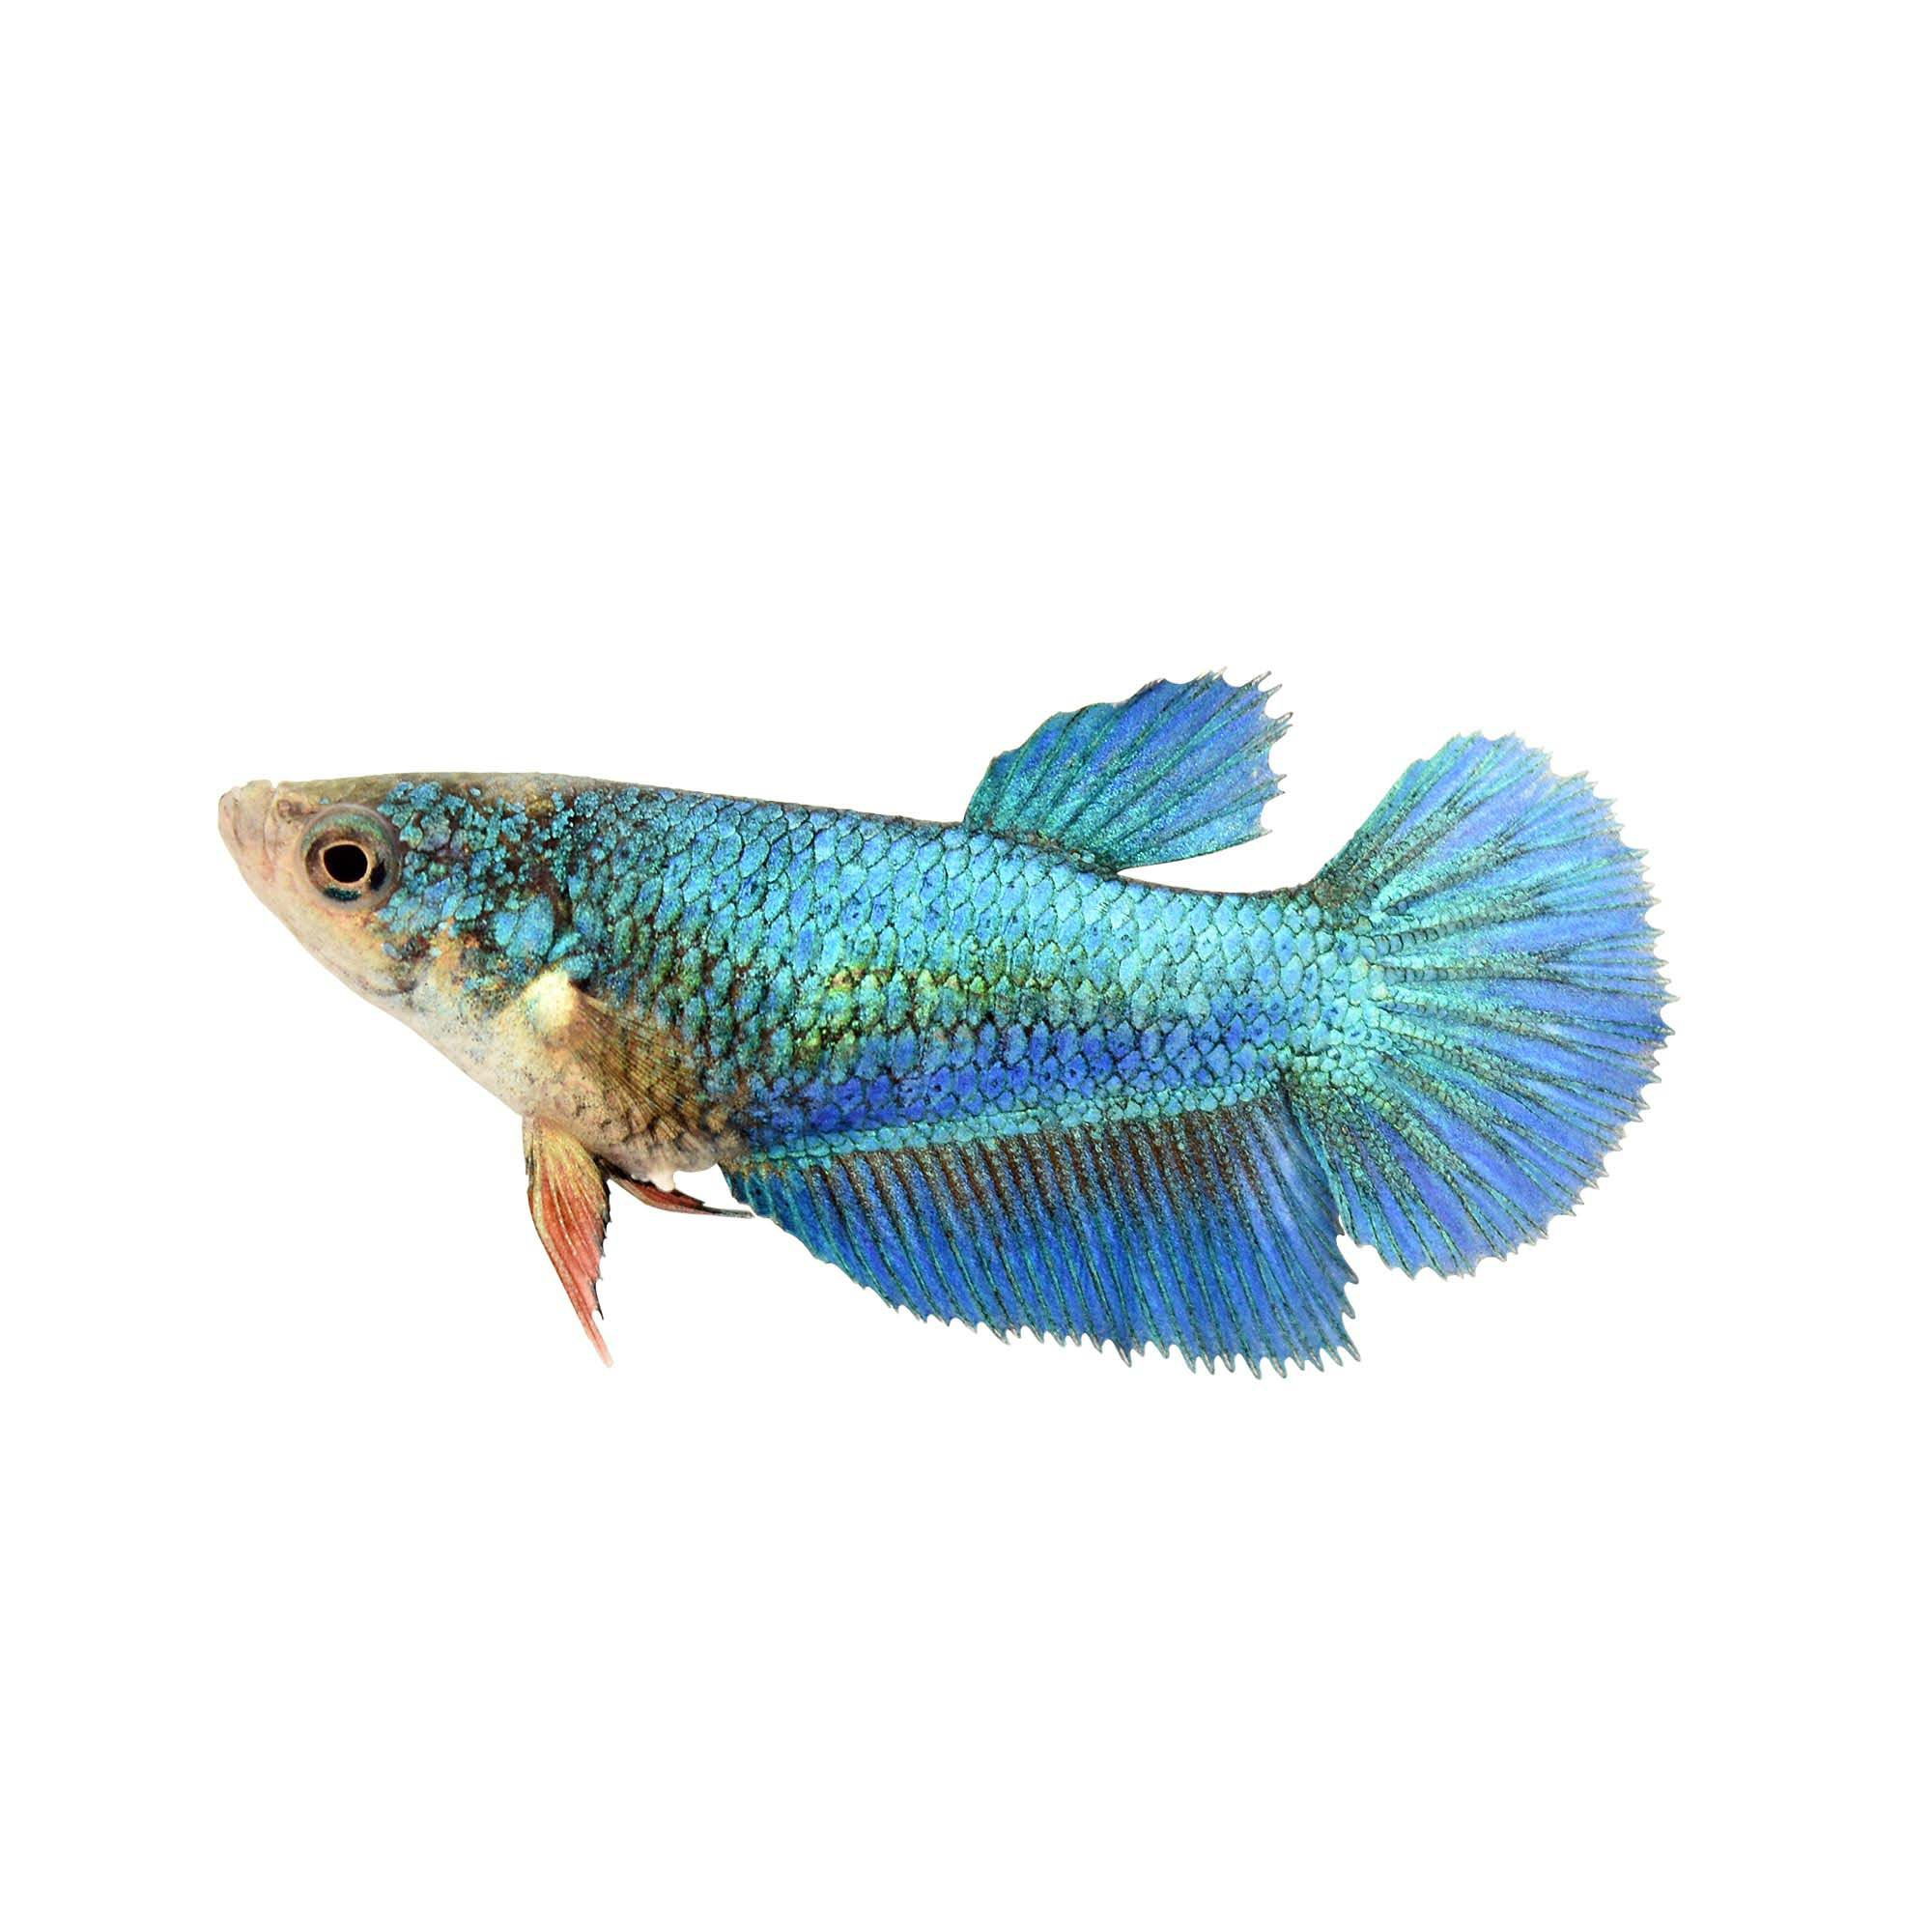 Female halfmoon betta petco for Betta fish petco